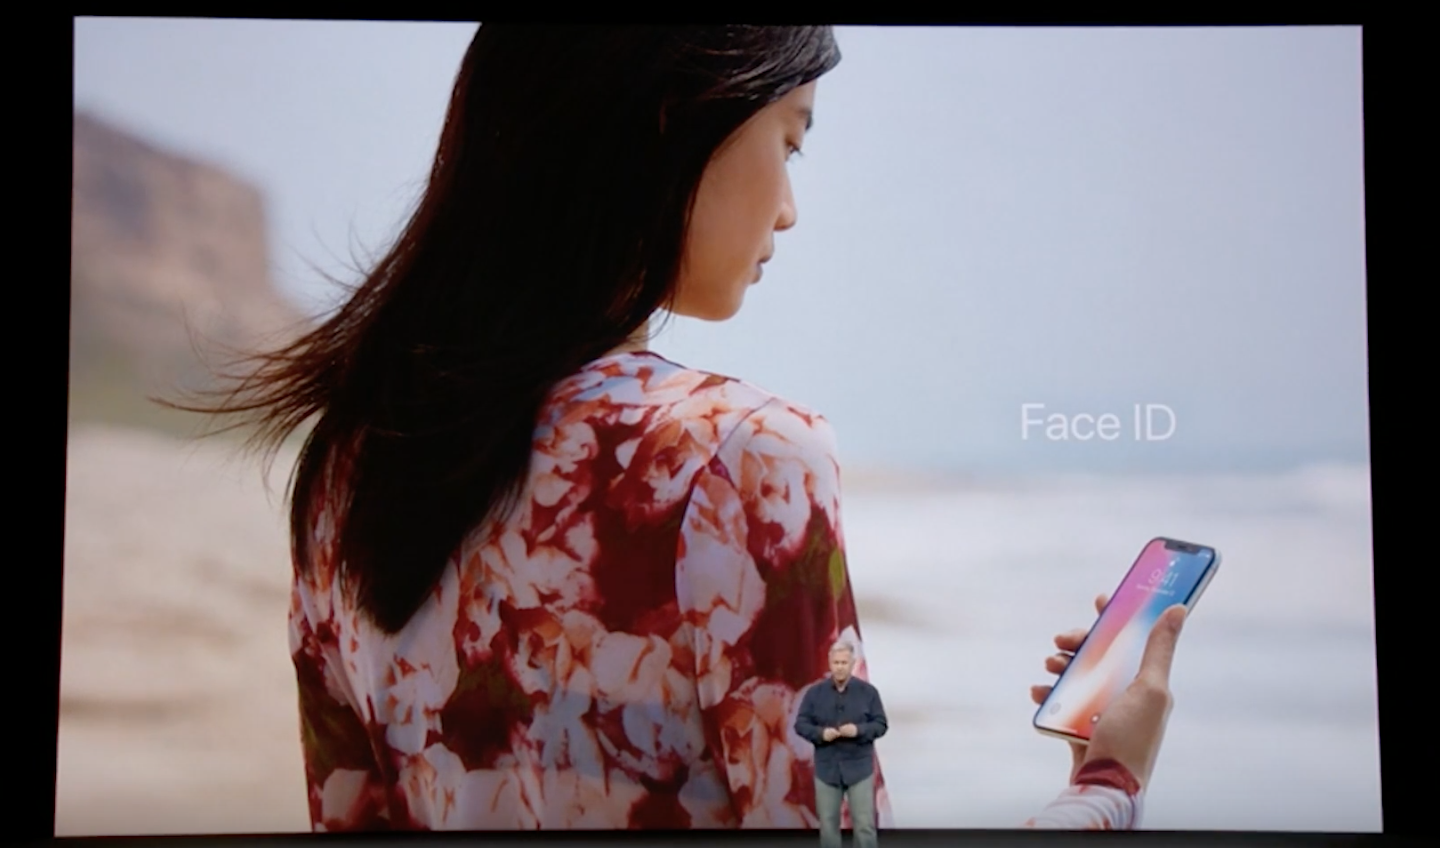 Apple's Phil Schiller unveils the company's new facial recognition technology